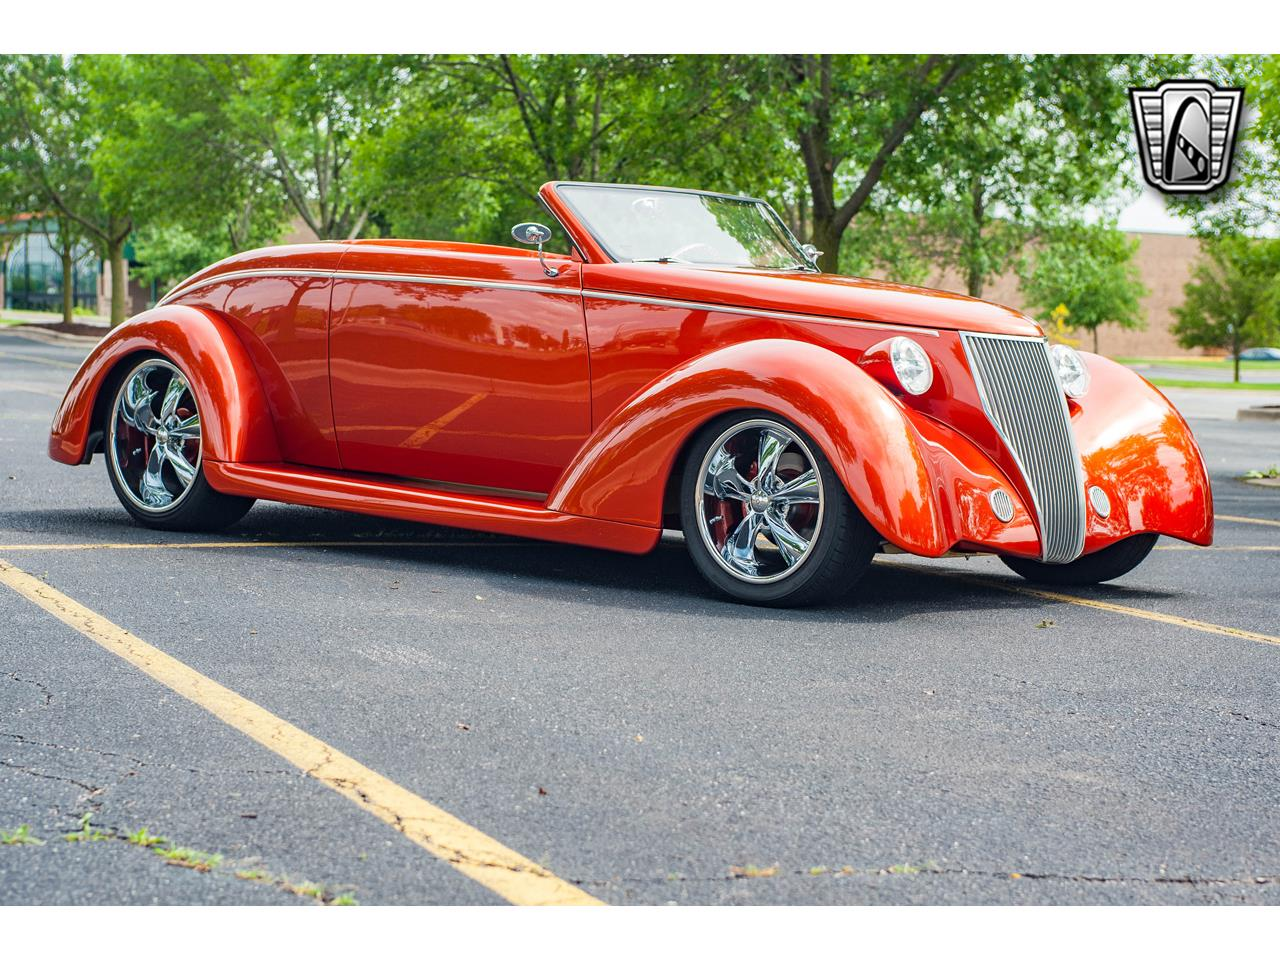 Large Picture of '36 Ford Roadster located in O'Fallon Illinois - $117,000.00 Offered by Gateway Classic Cars - St. Louis - QB9T